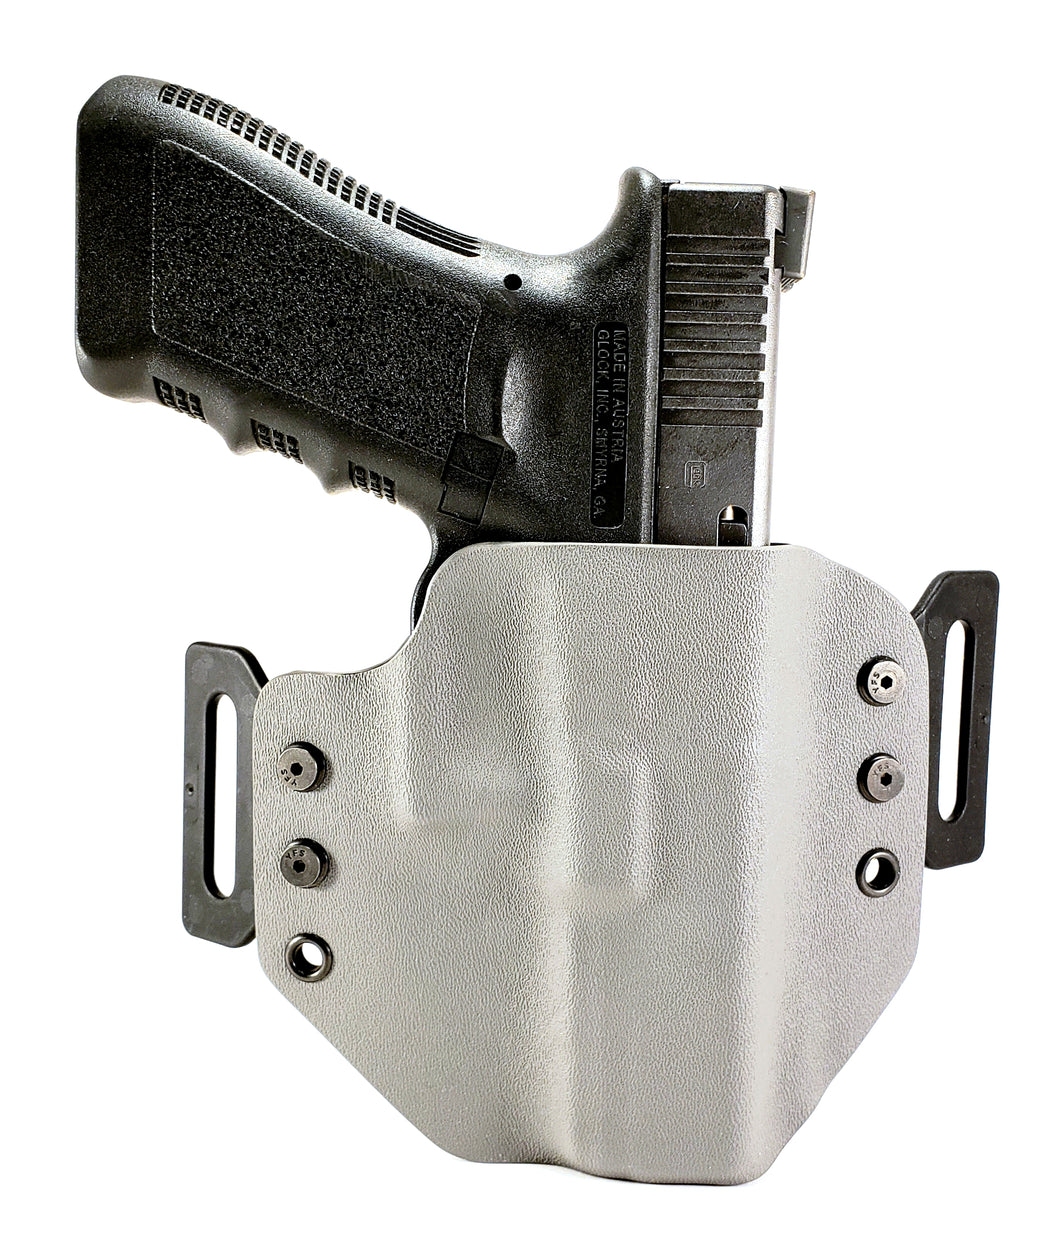 Sure-Fit O.W.B. Holster Gray (RIGHT HAND) Gun Models A-R